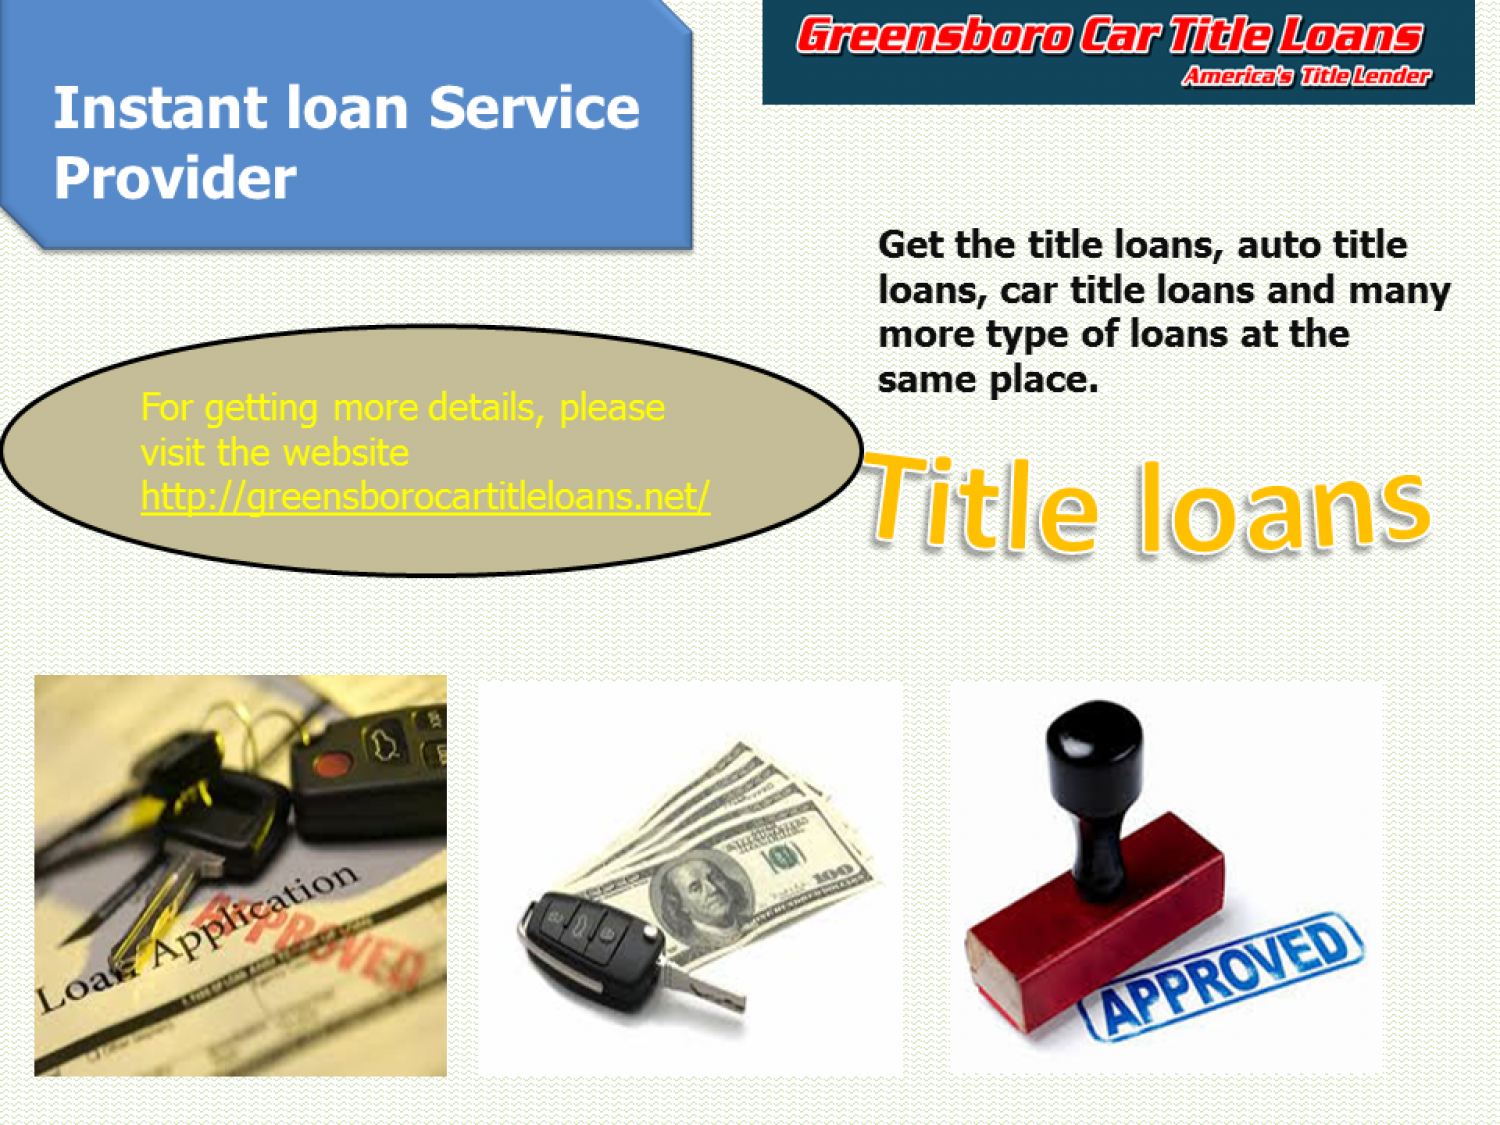 Are You Looking for Title Loans or Car Title Loans?